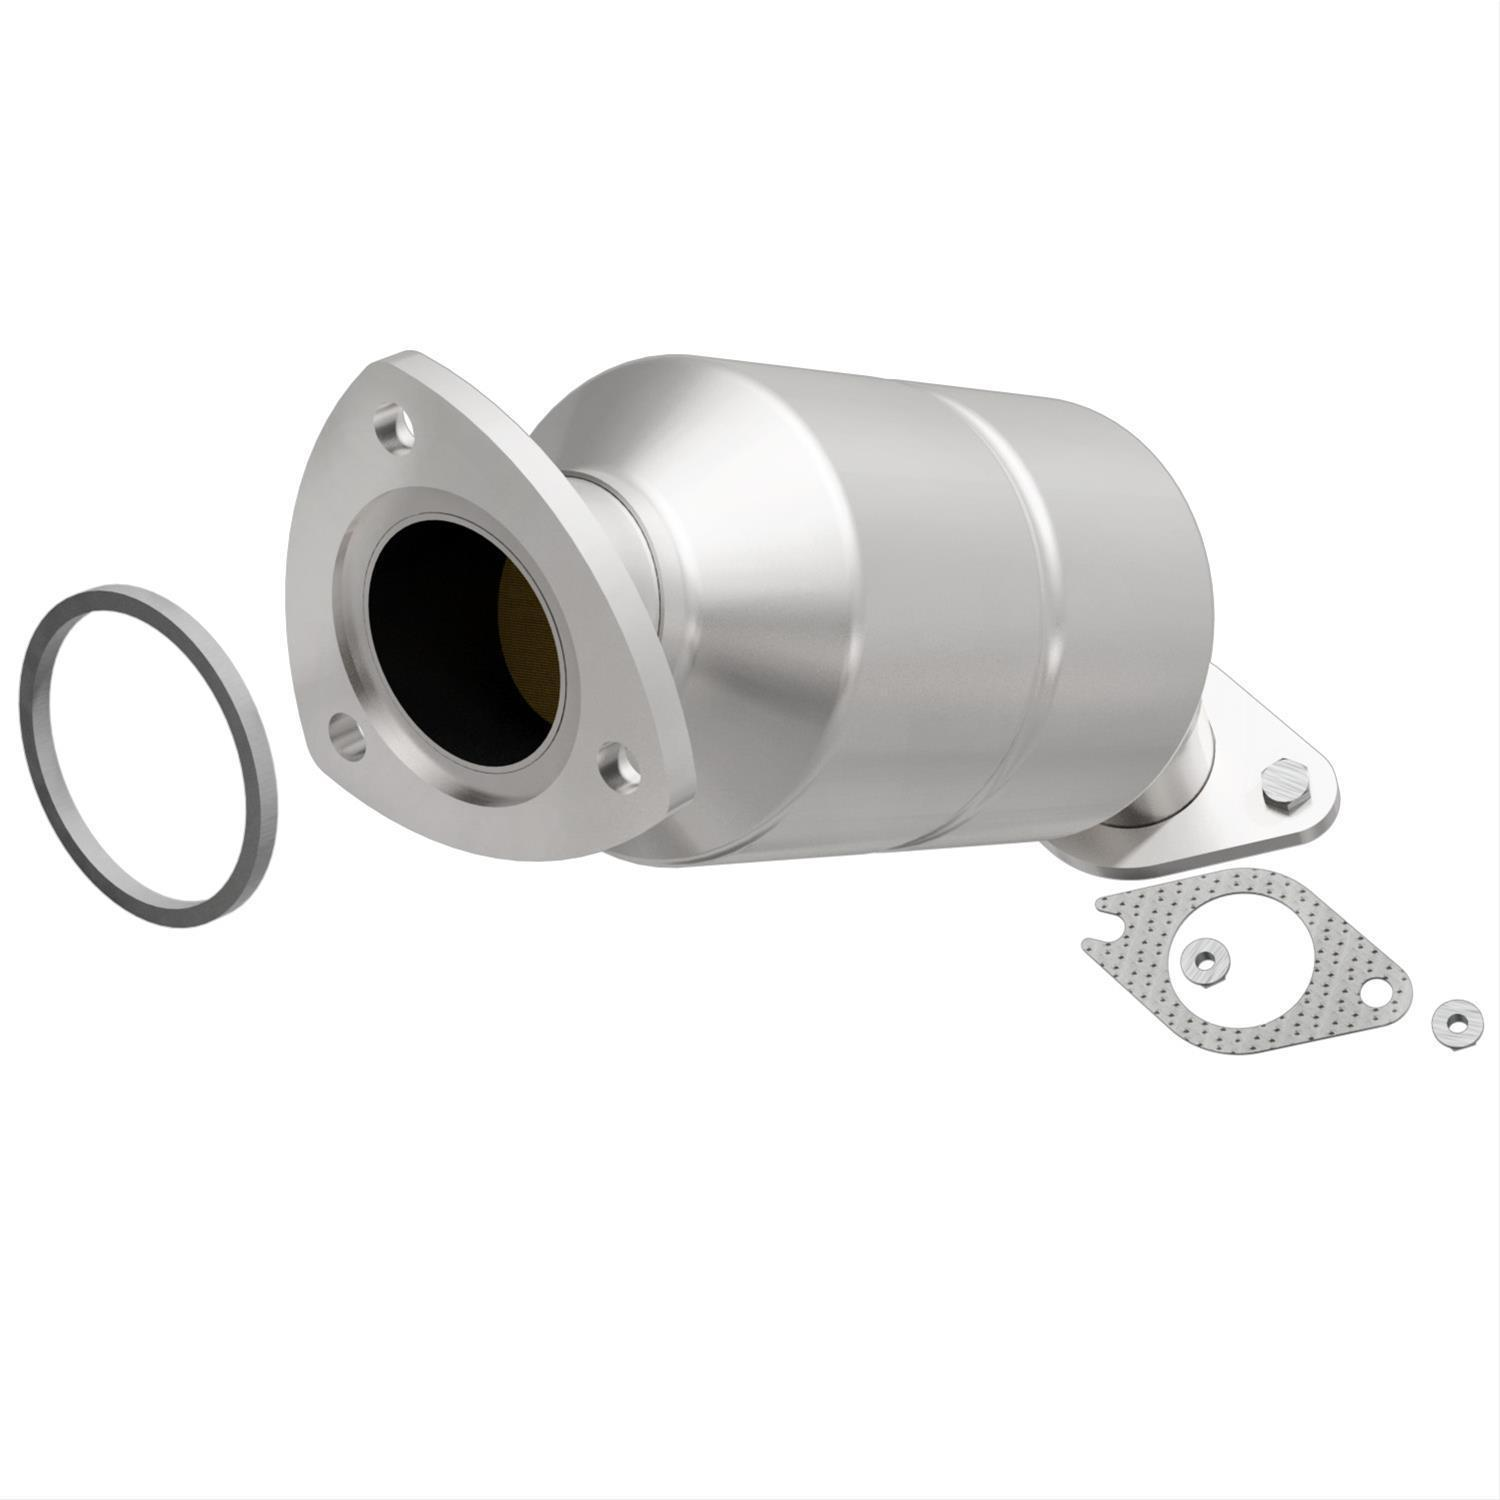 MagnaFlow Direct Fit Catalytic Converter 49446